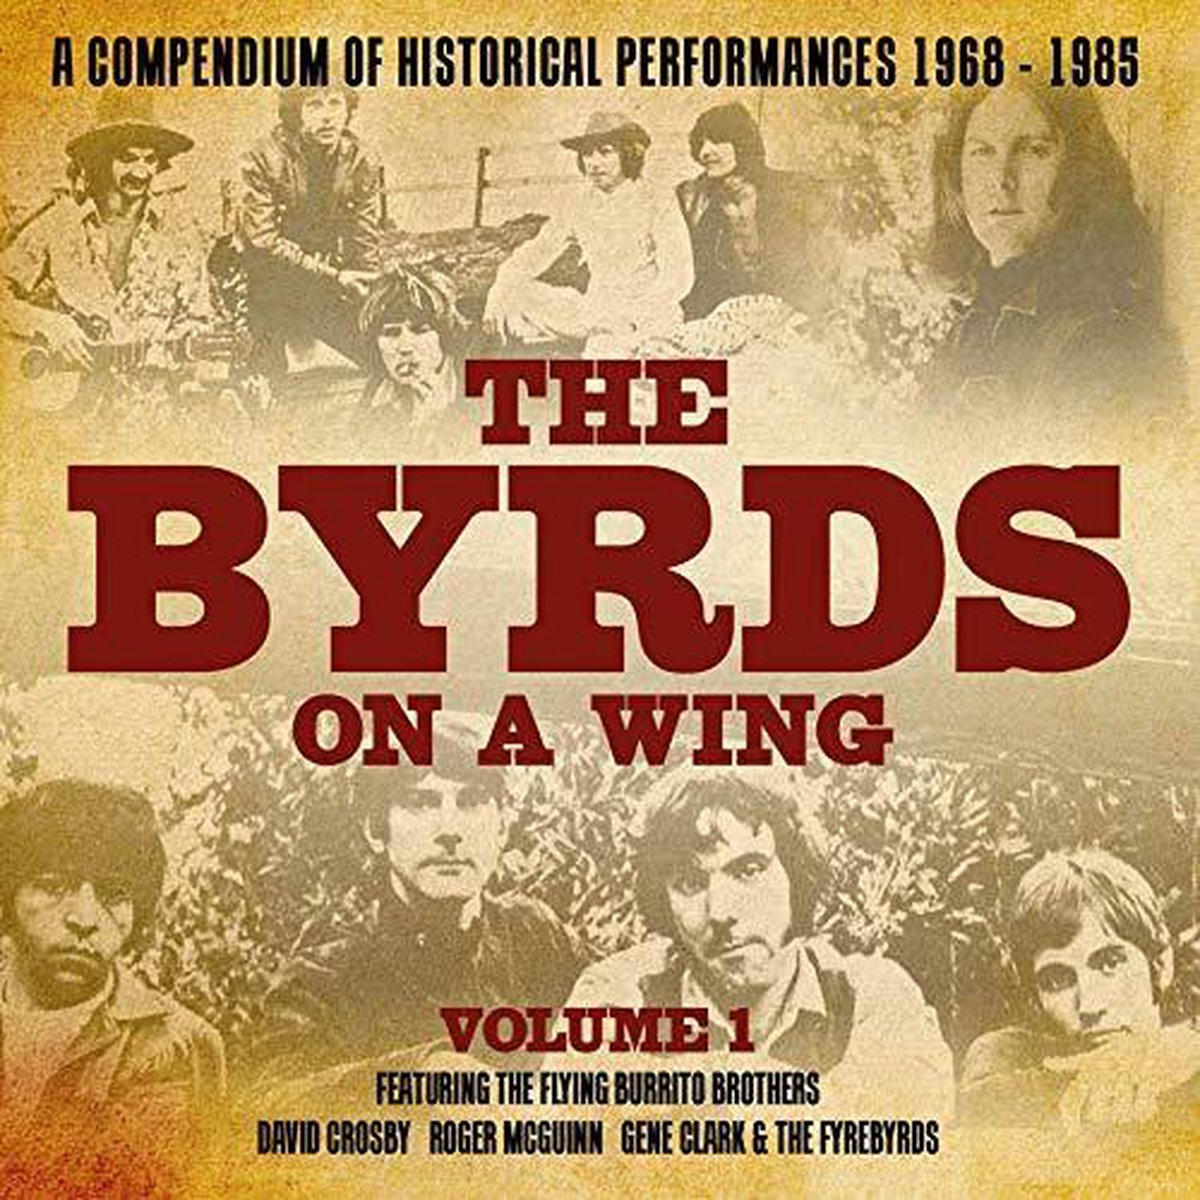 Byrds On A Wing Volume 1 - Various